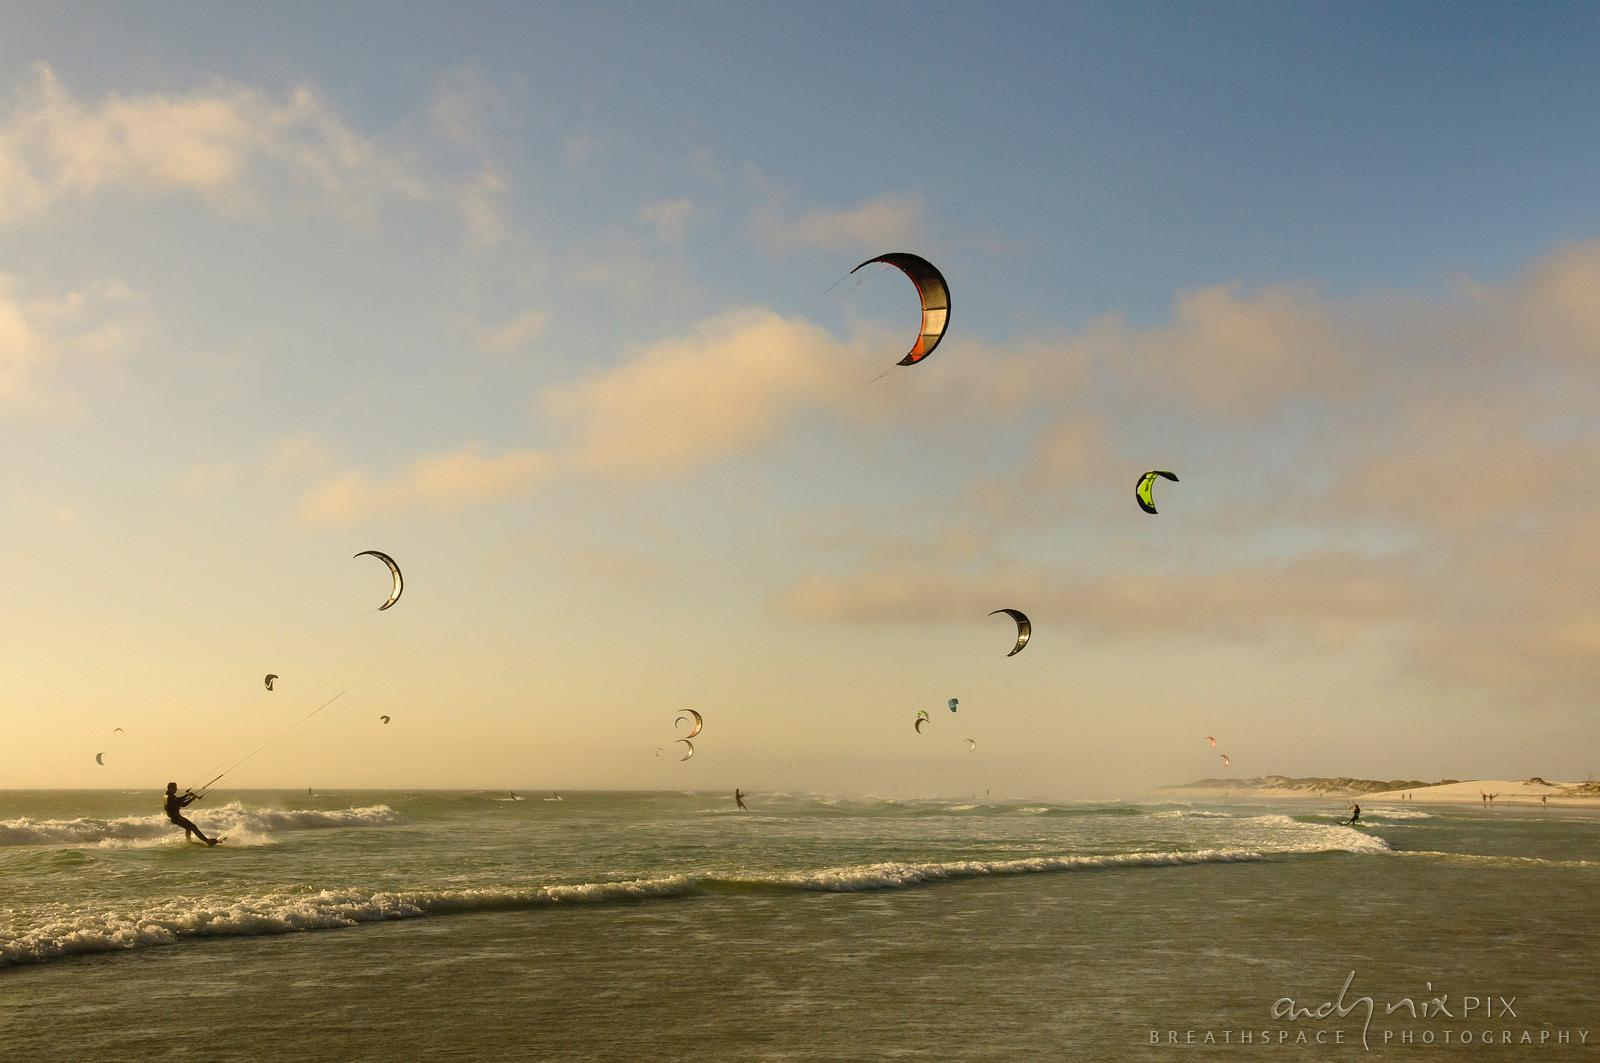 Many kitesurfers on sea at sunset